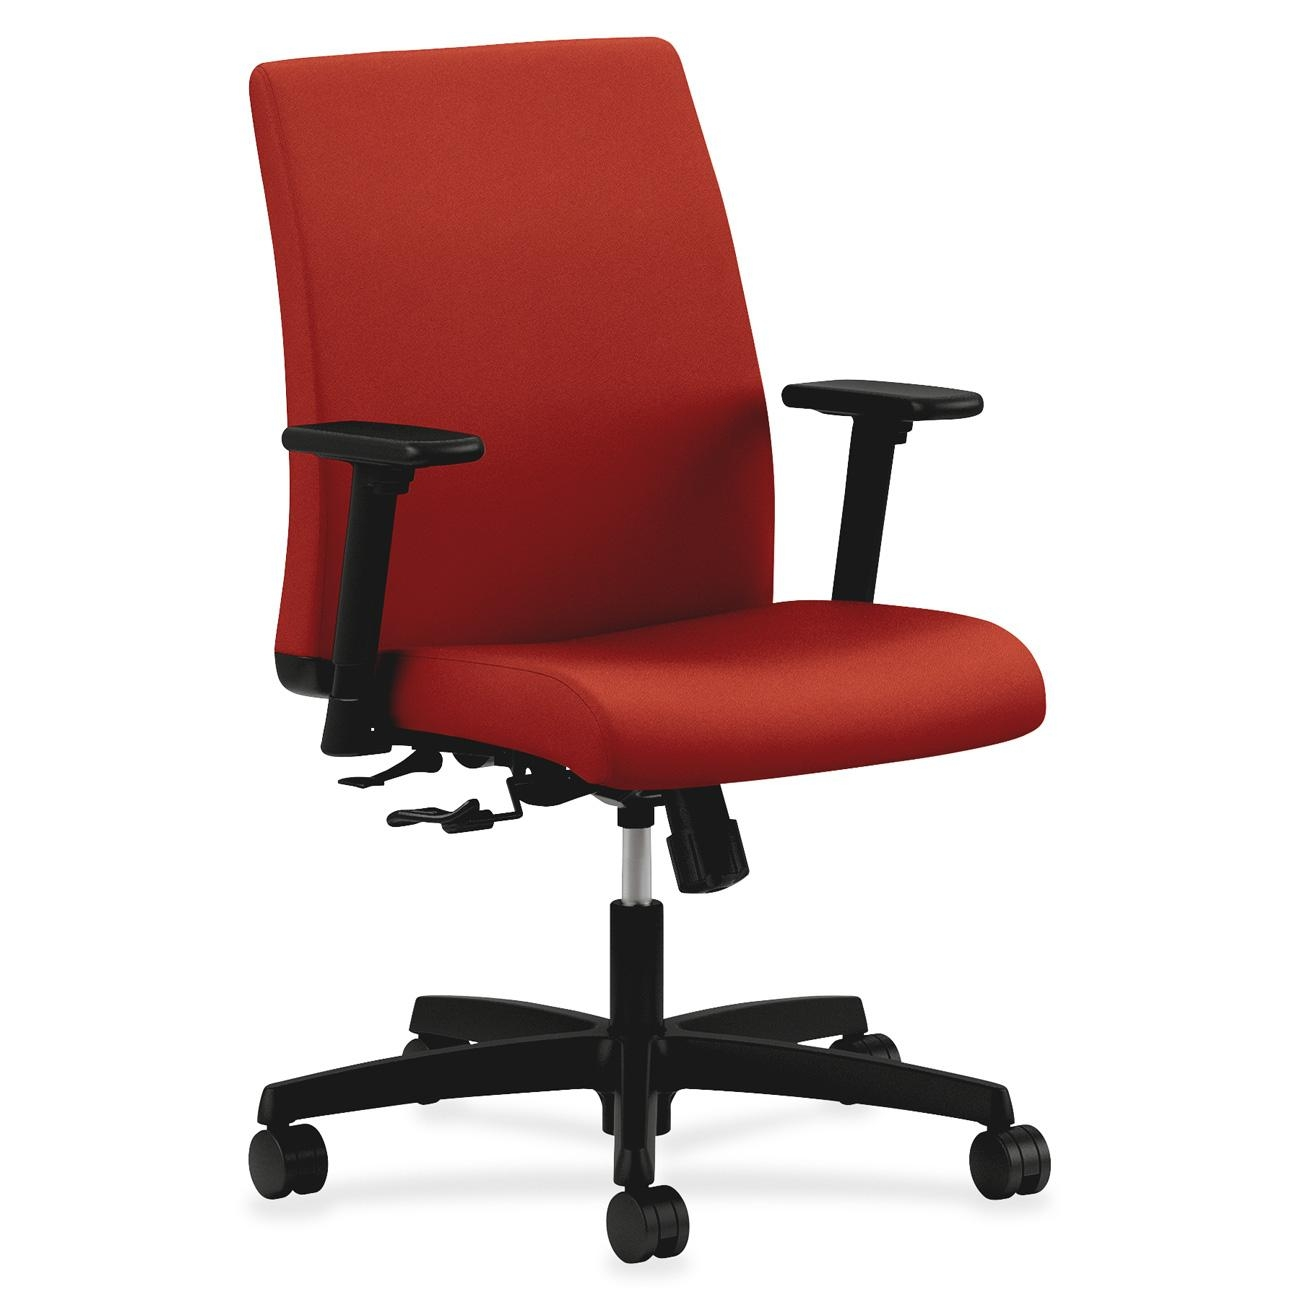 hon ignition fabric chair wood chairs for sale printer